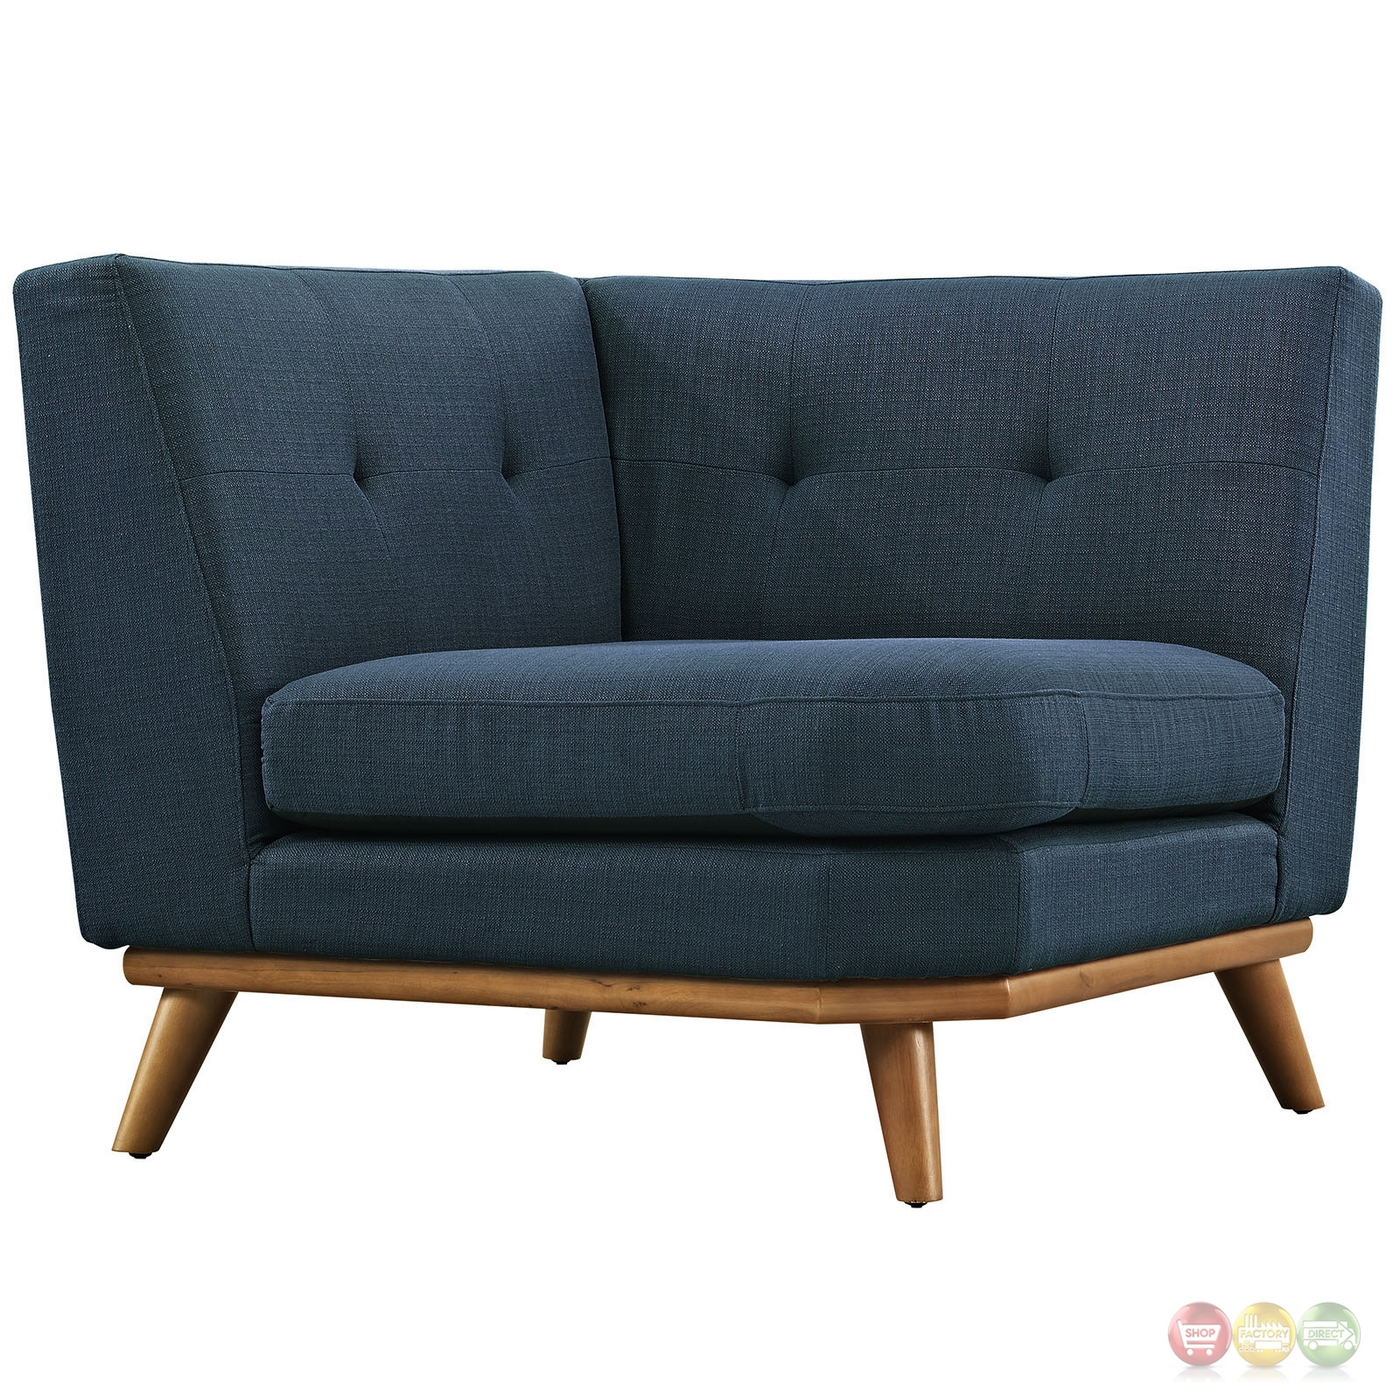 Mid Century Modern Sectional: Mid-Century Modern Engage 5pc Button-Tufted Fabric